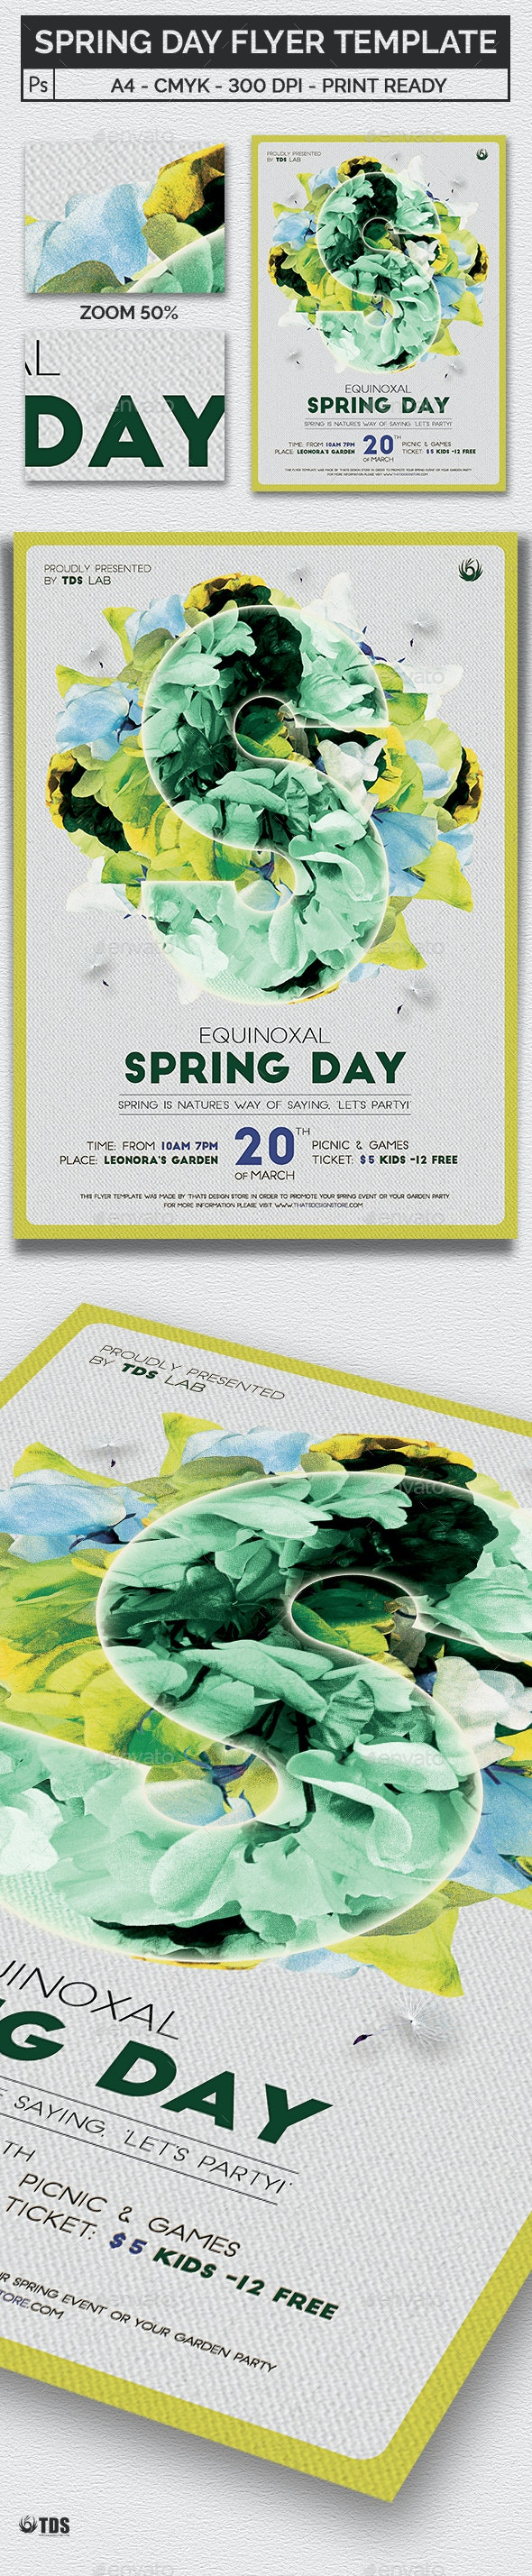 Spring Day Flyer Template - Clubs & Parties Events